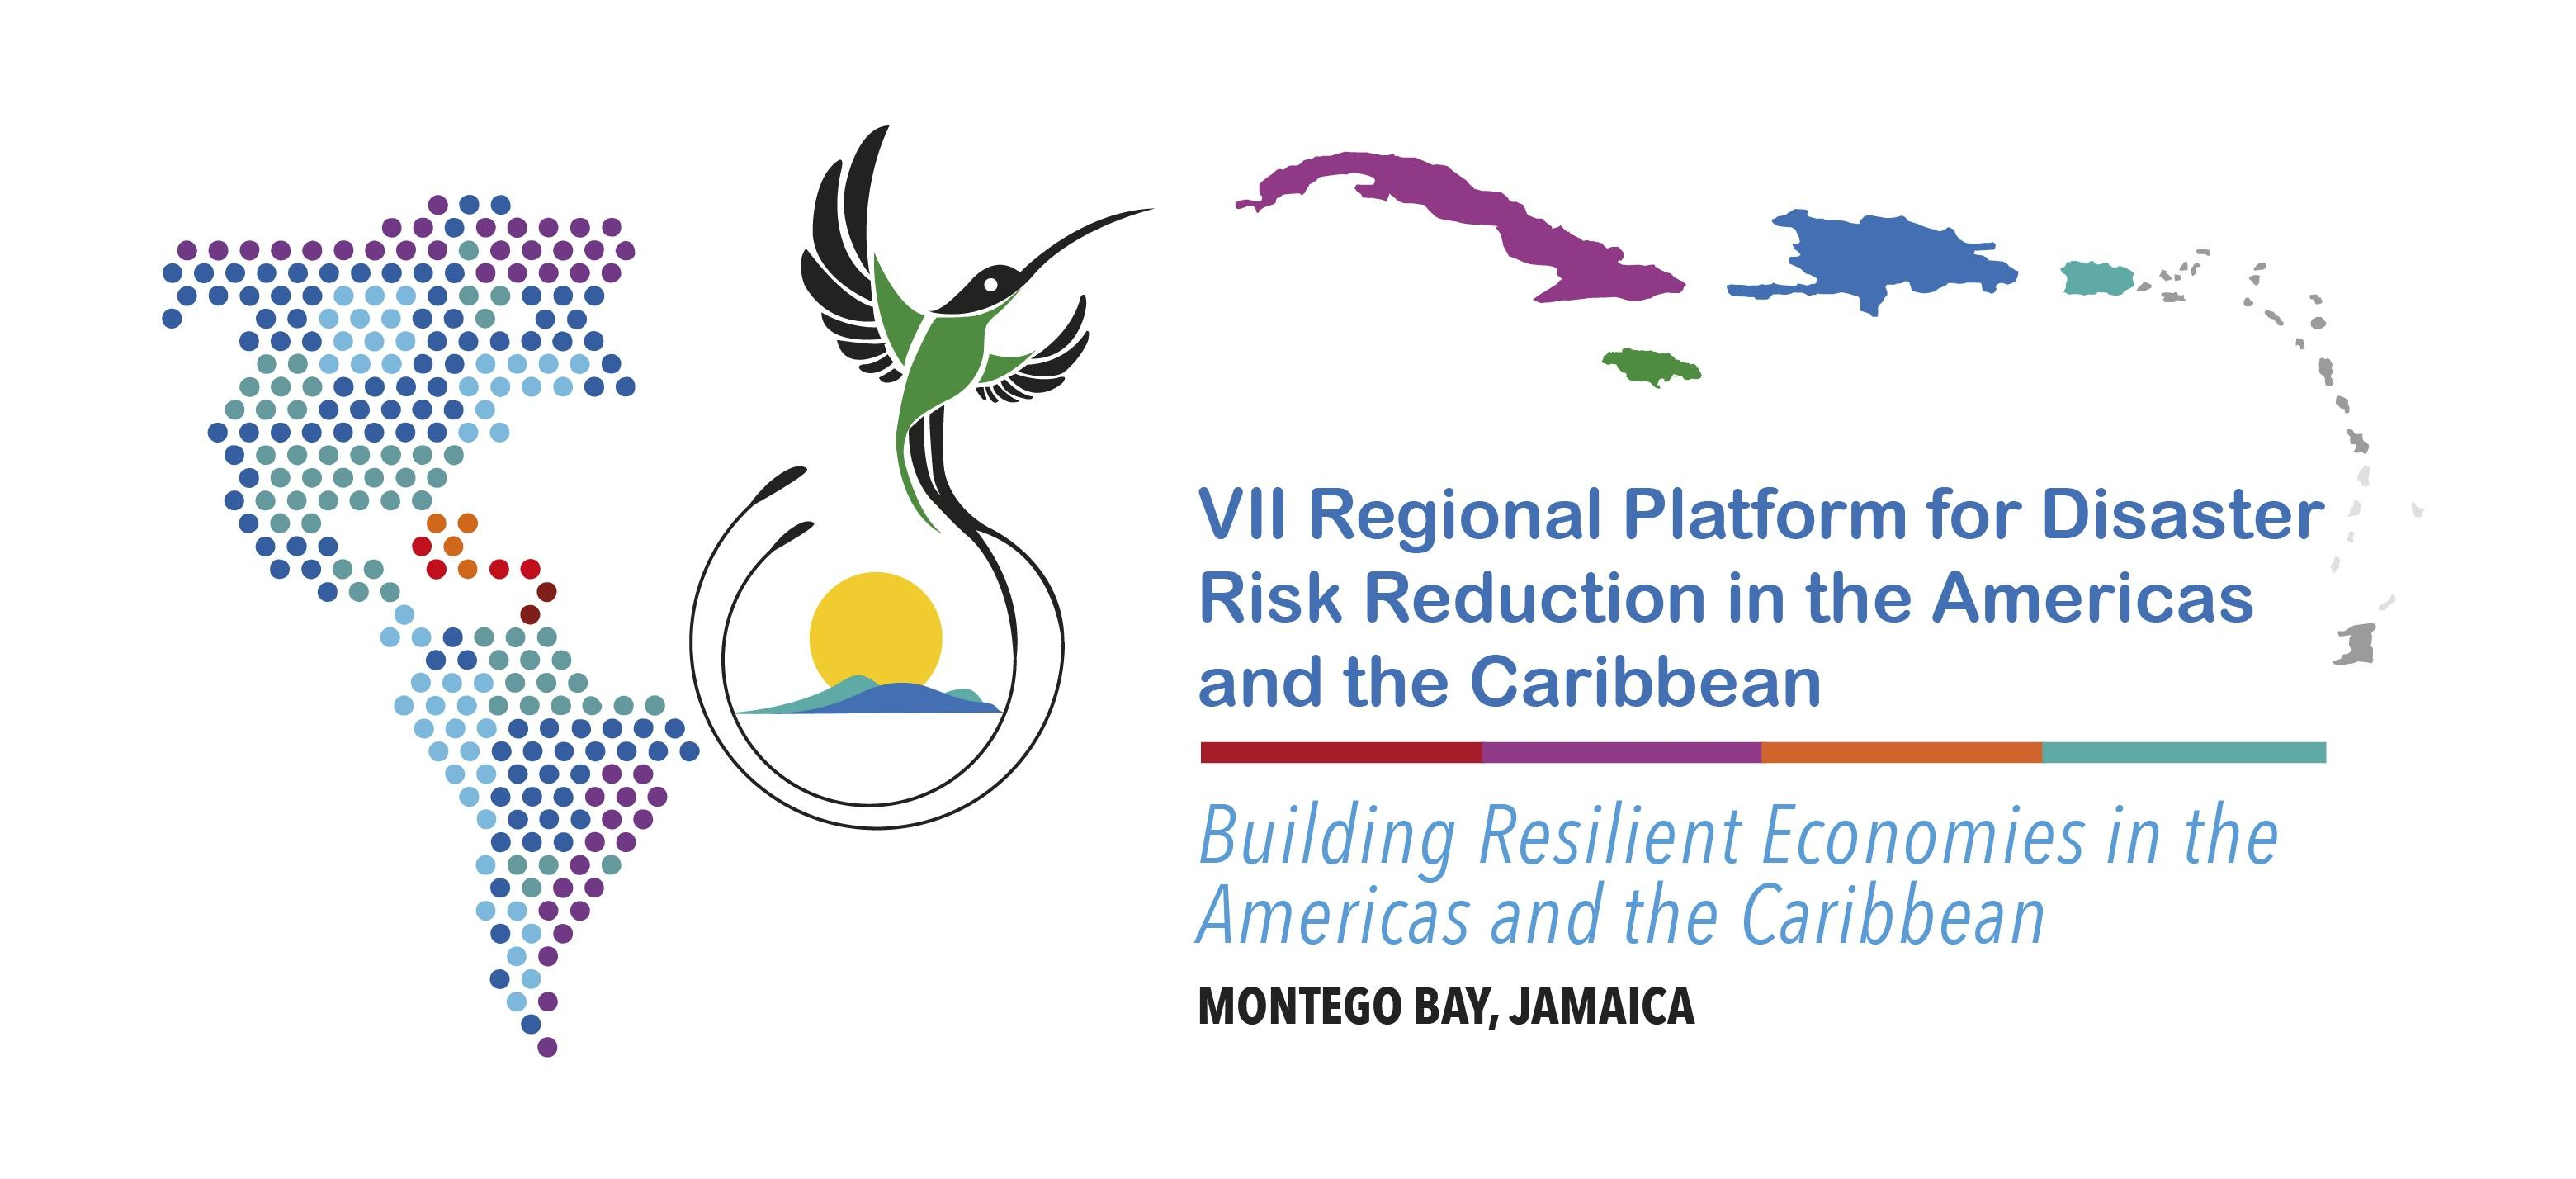 VII Regional Platform will be held in 2021